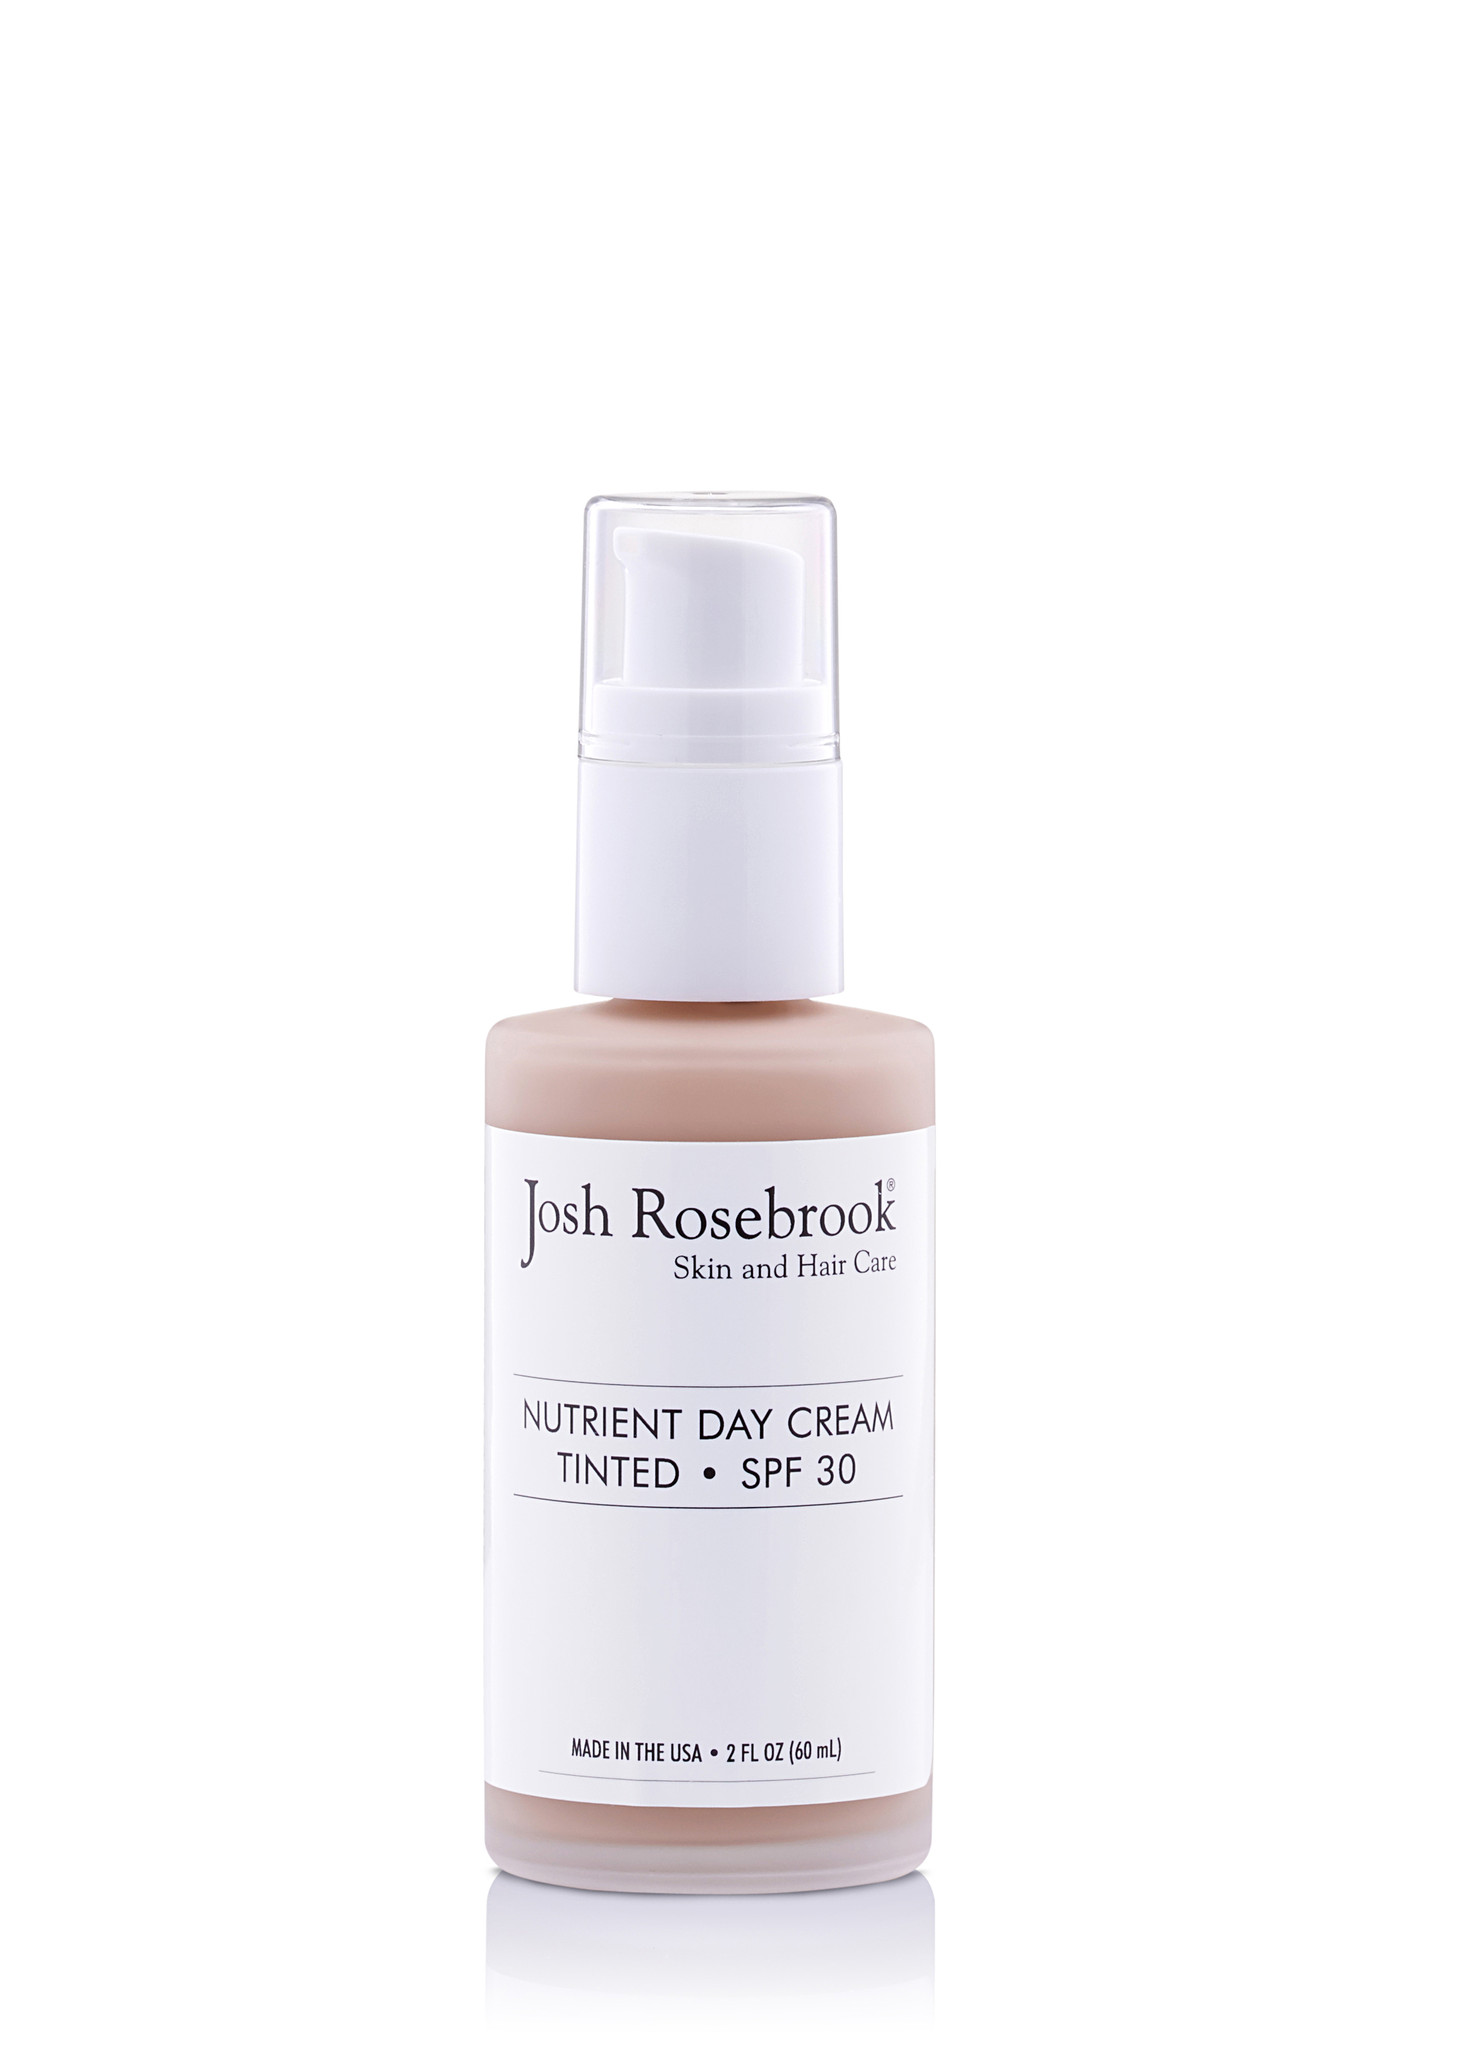 luxurious-natural-beauty-gifts-viva-glam-magazine-brianne-nemiroff-nut-daycream-tint-2oz-josh_rosebrook04954